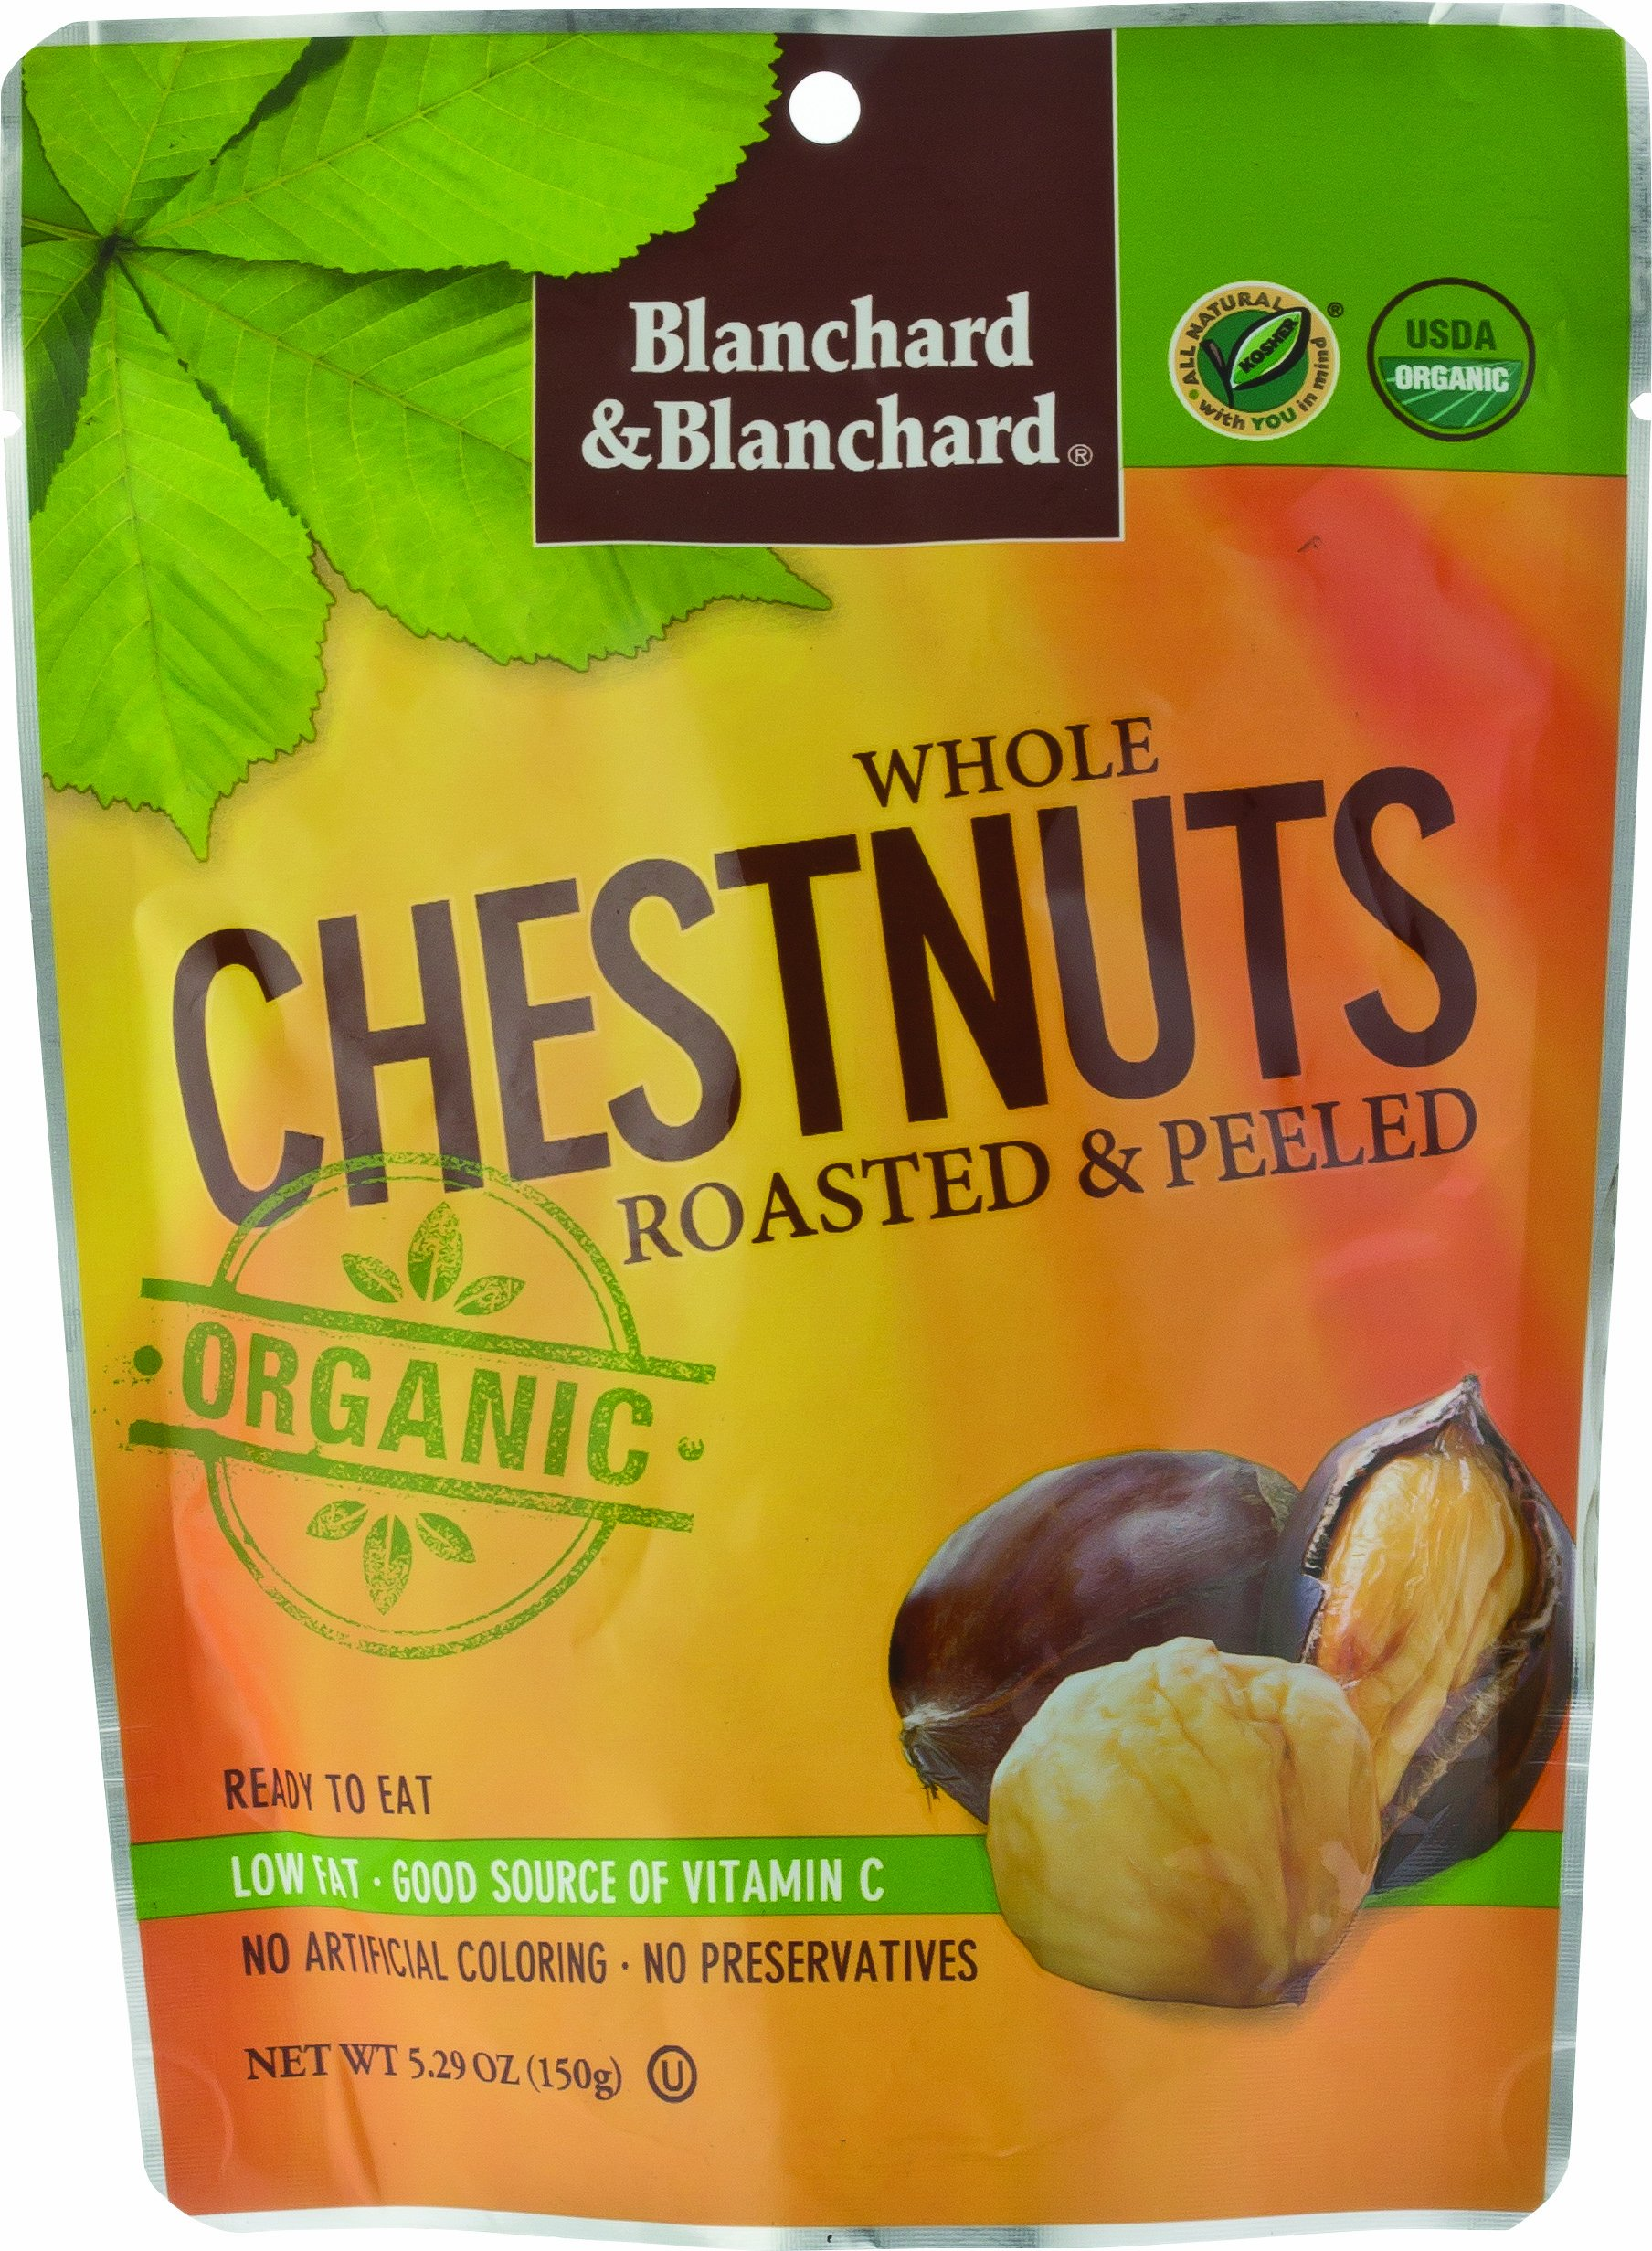 Whole Chestnuts Roasted & Peeled (Organic) 5.29oz 6 Pack by Blanchard & Blanchard